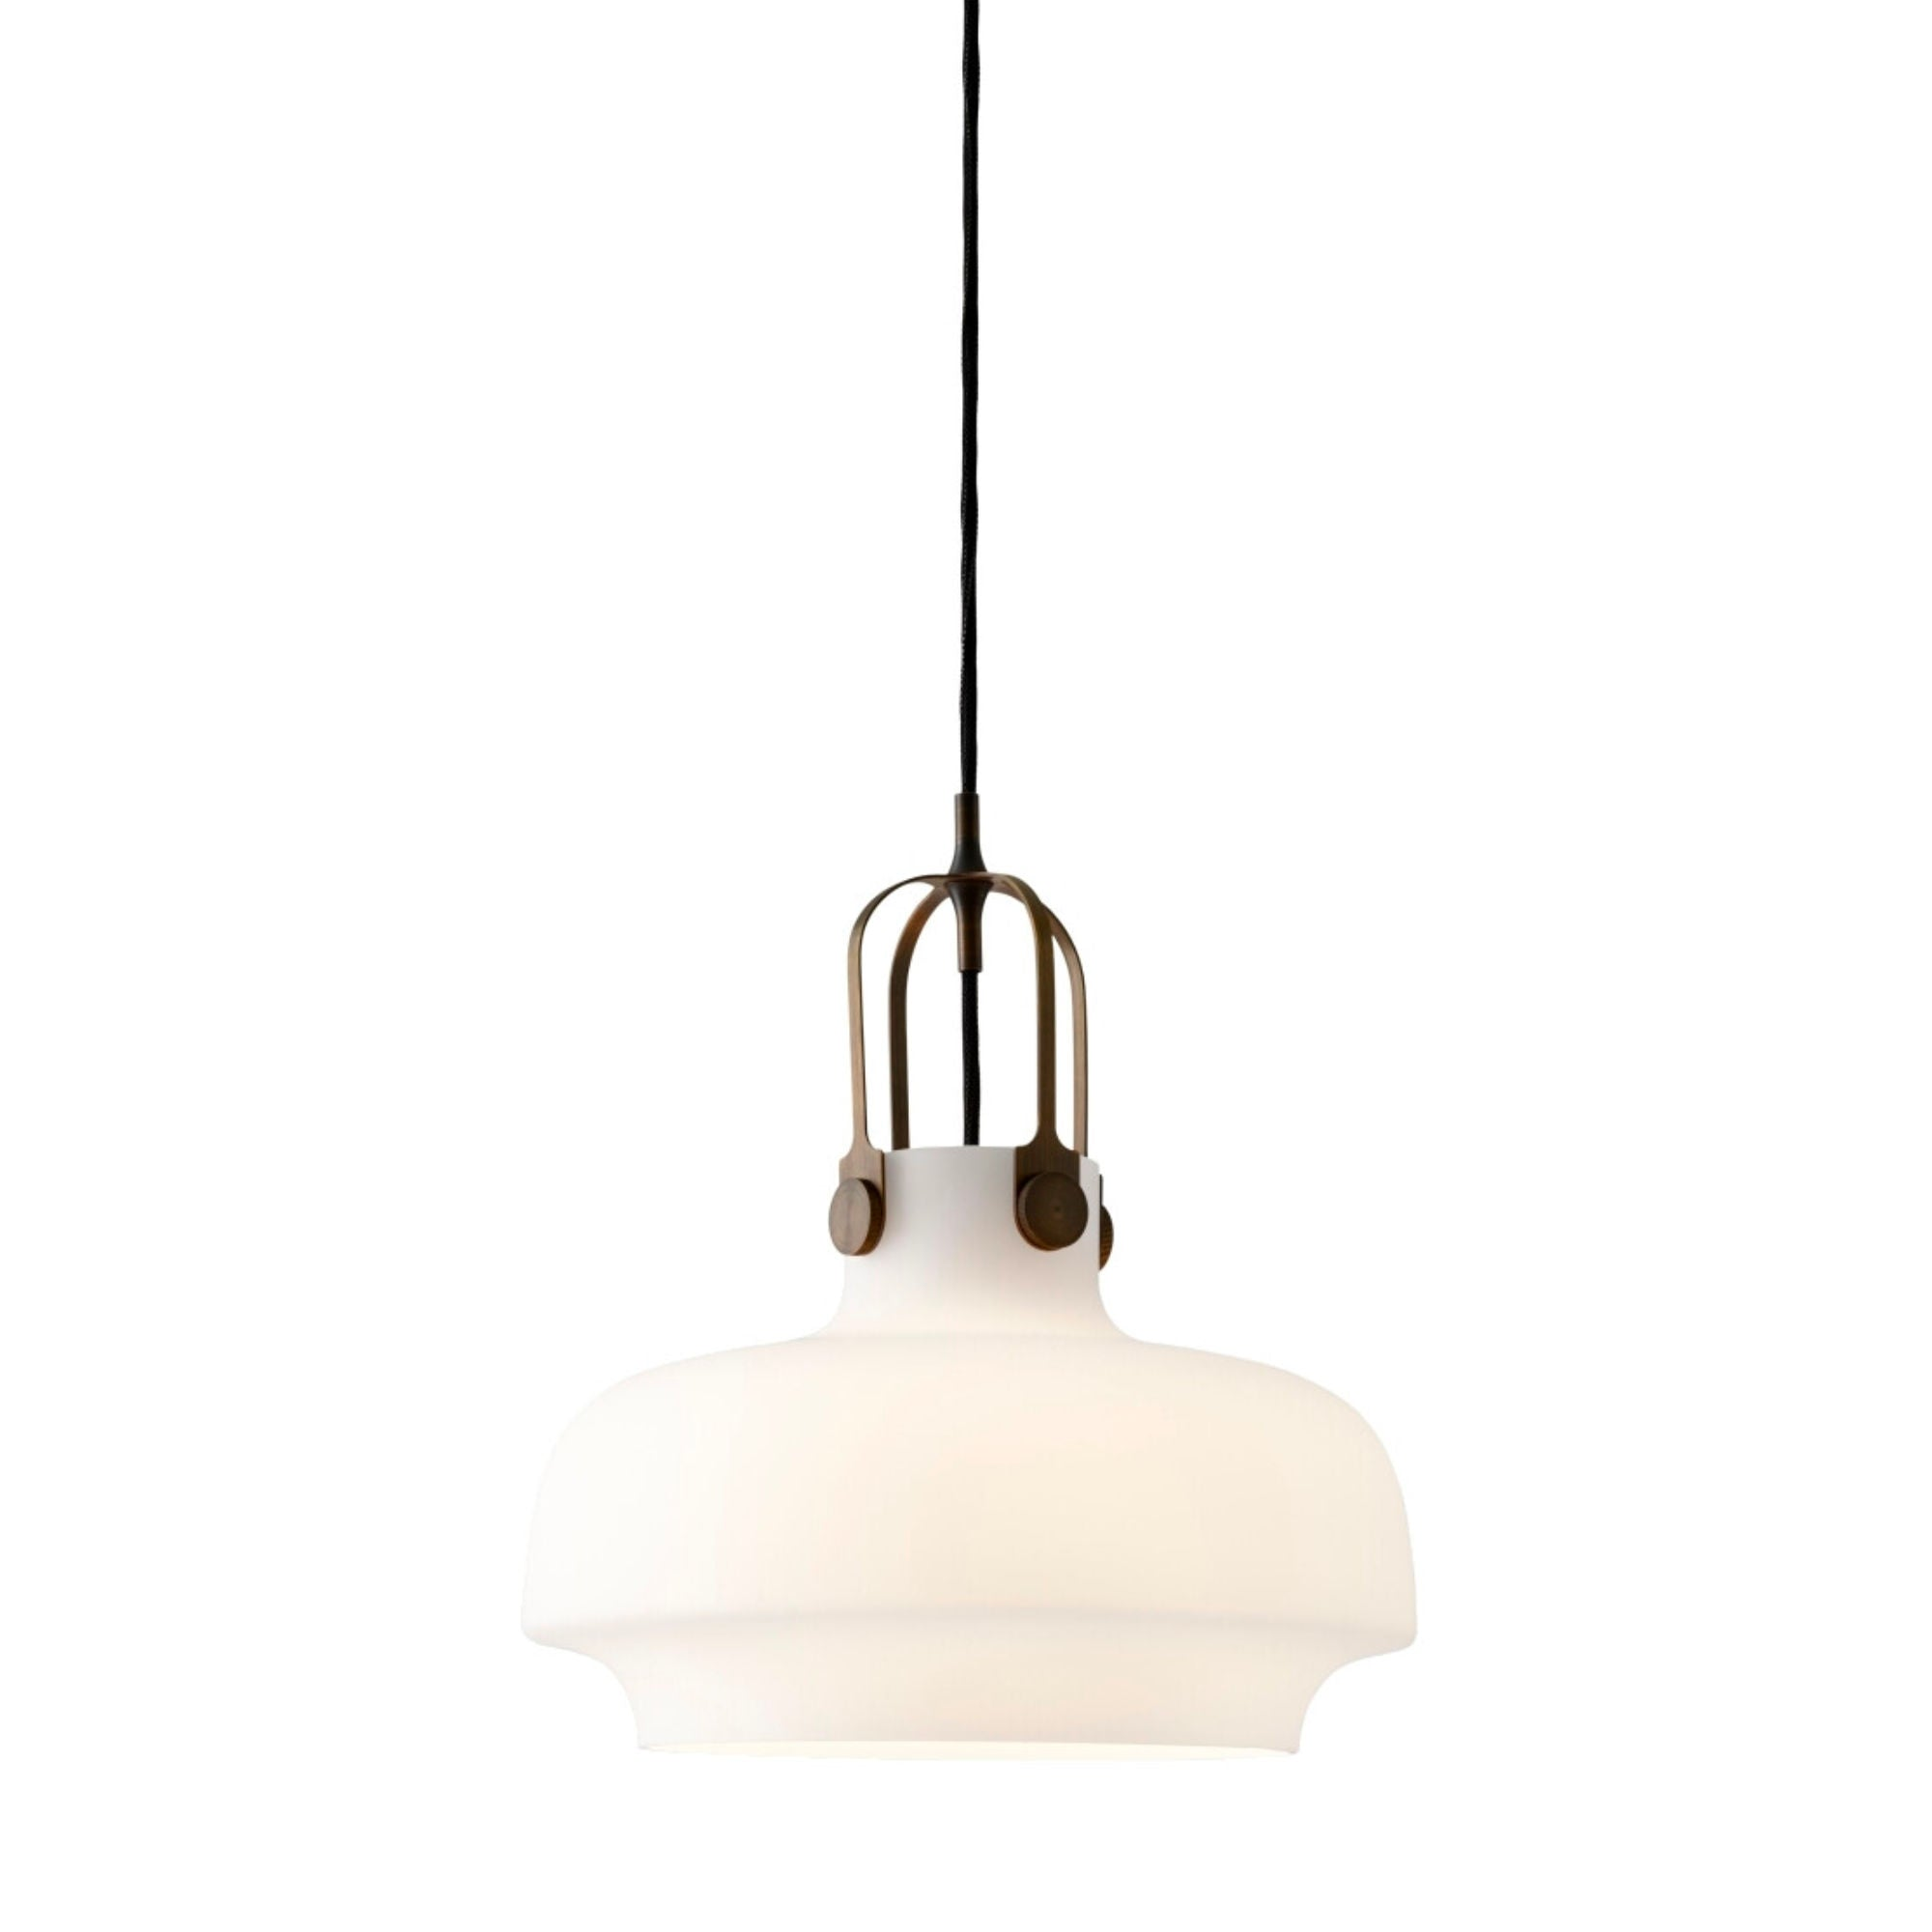 &Tradition SC6 Copenhagen pendant light, Opal Glass-Bronzed Brass